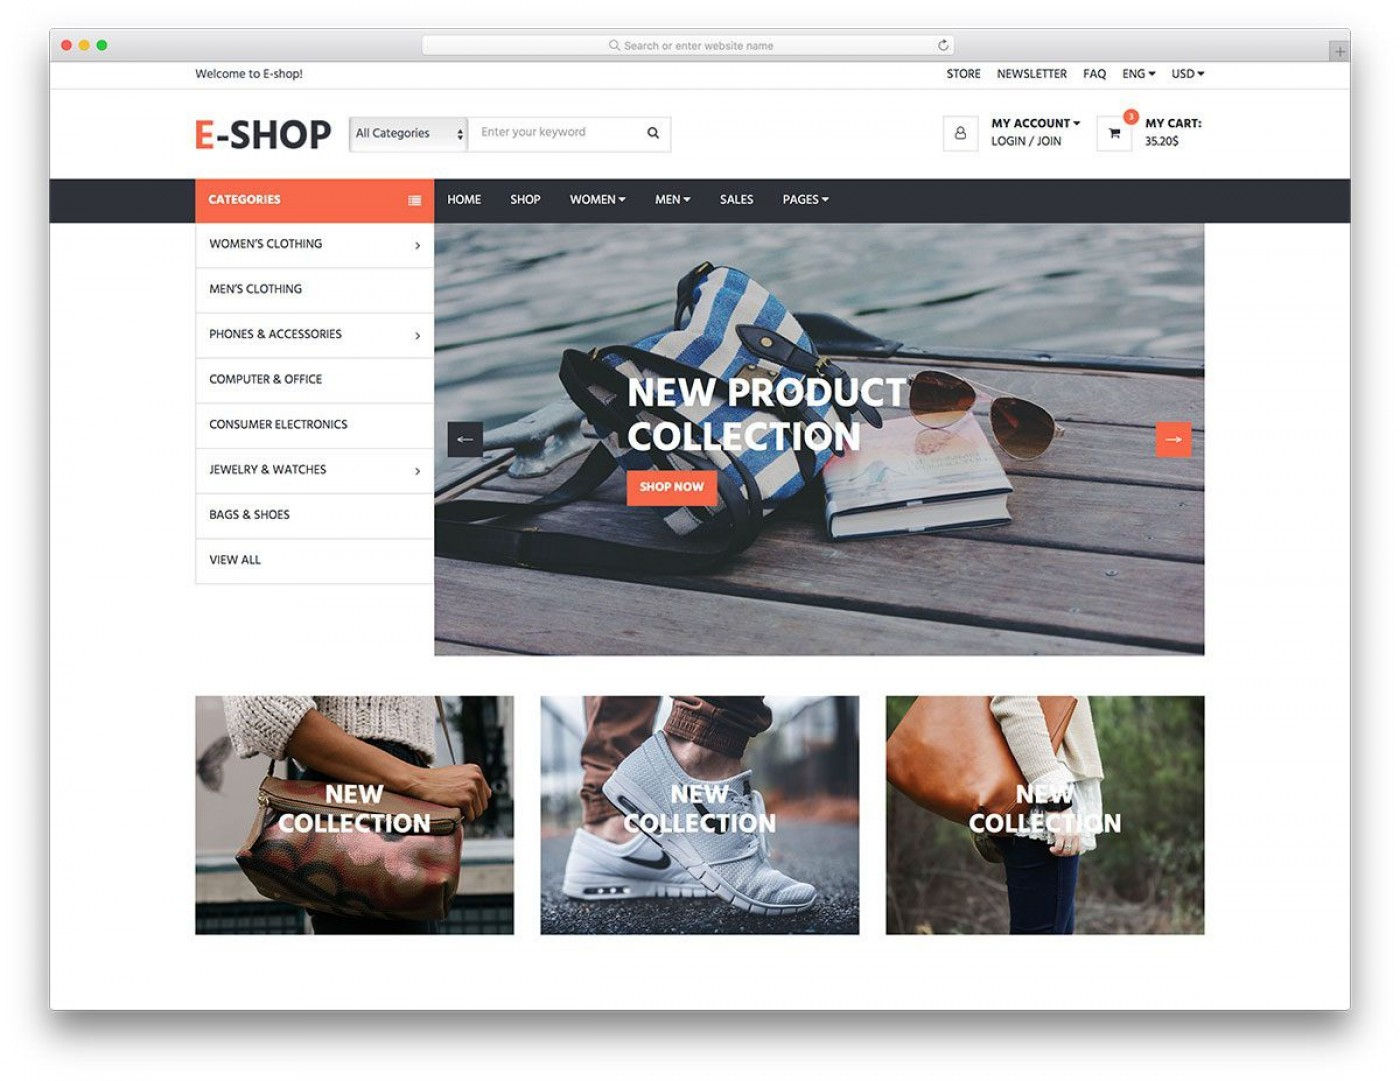 005 Unusual Ecommerce Website Template Html Free Download Sample  Bootstrap 4 Responsive With Cs Jquery1400